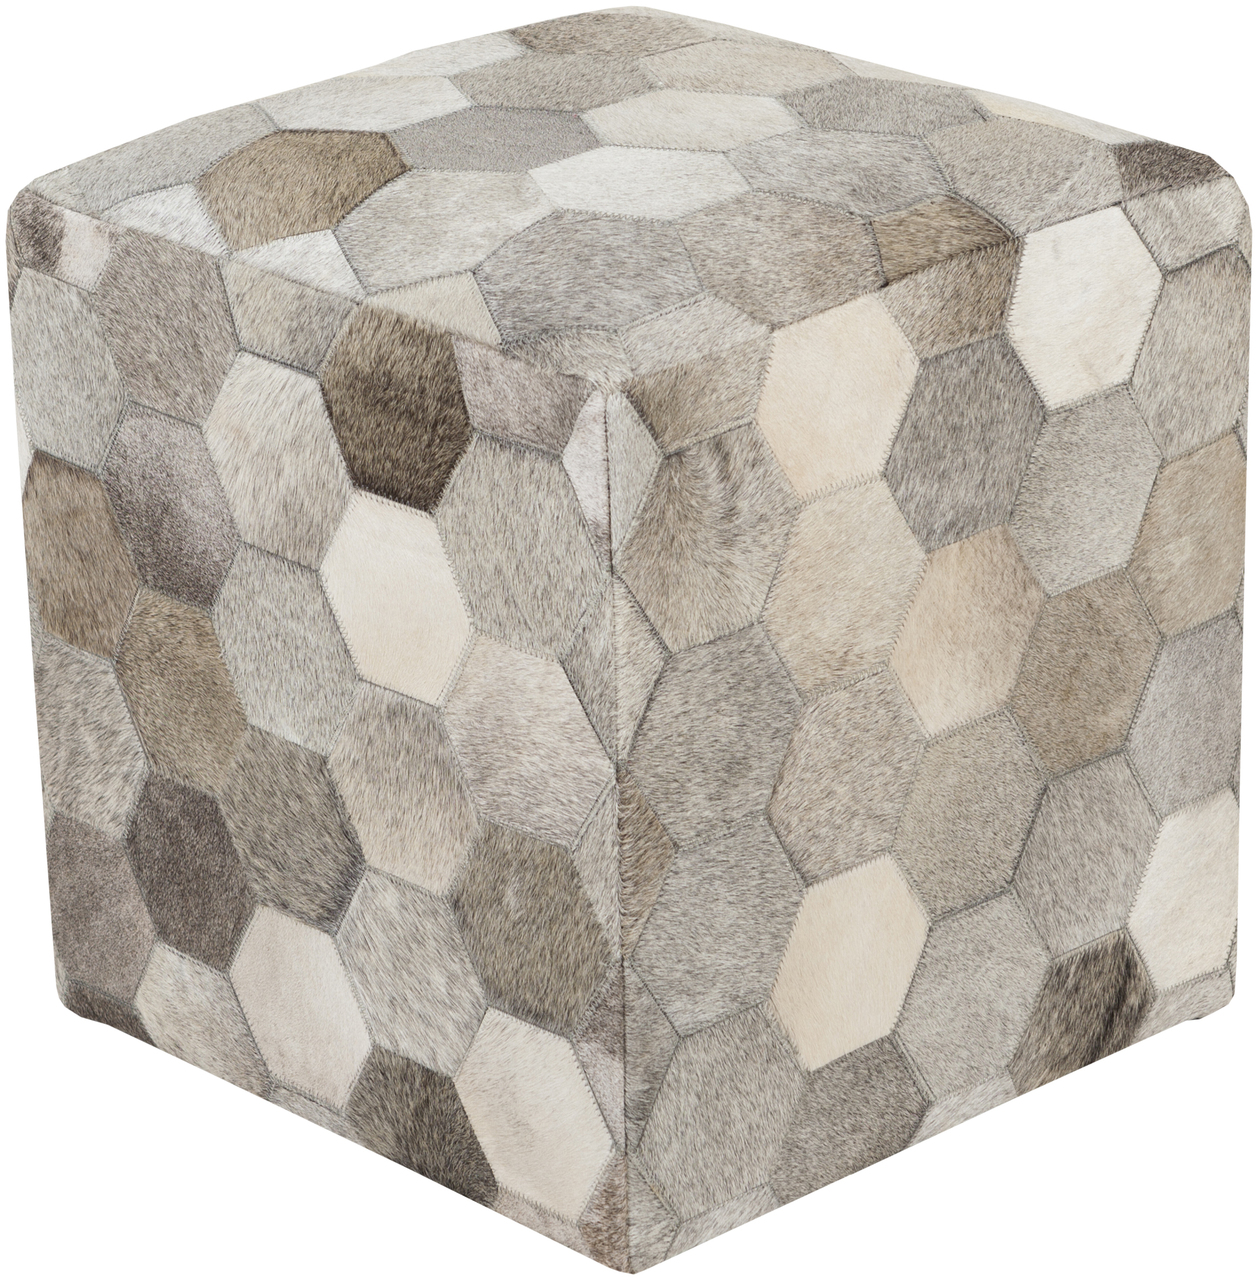 Trail Hair on Hide Leather Pouf